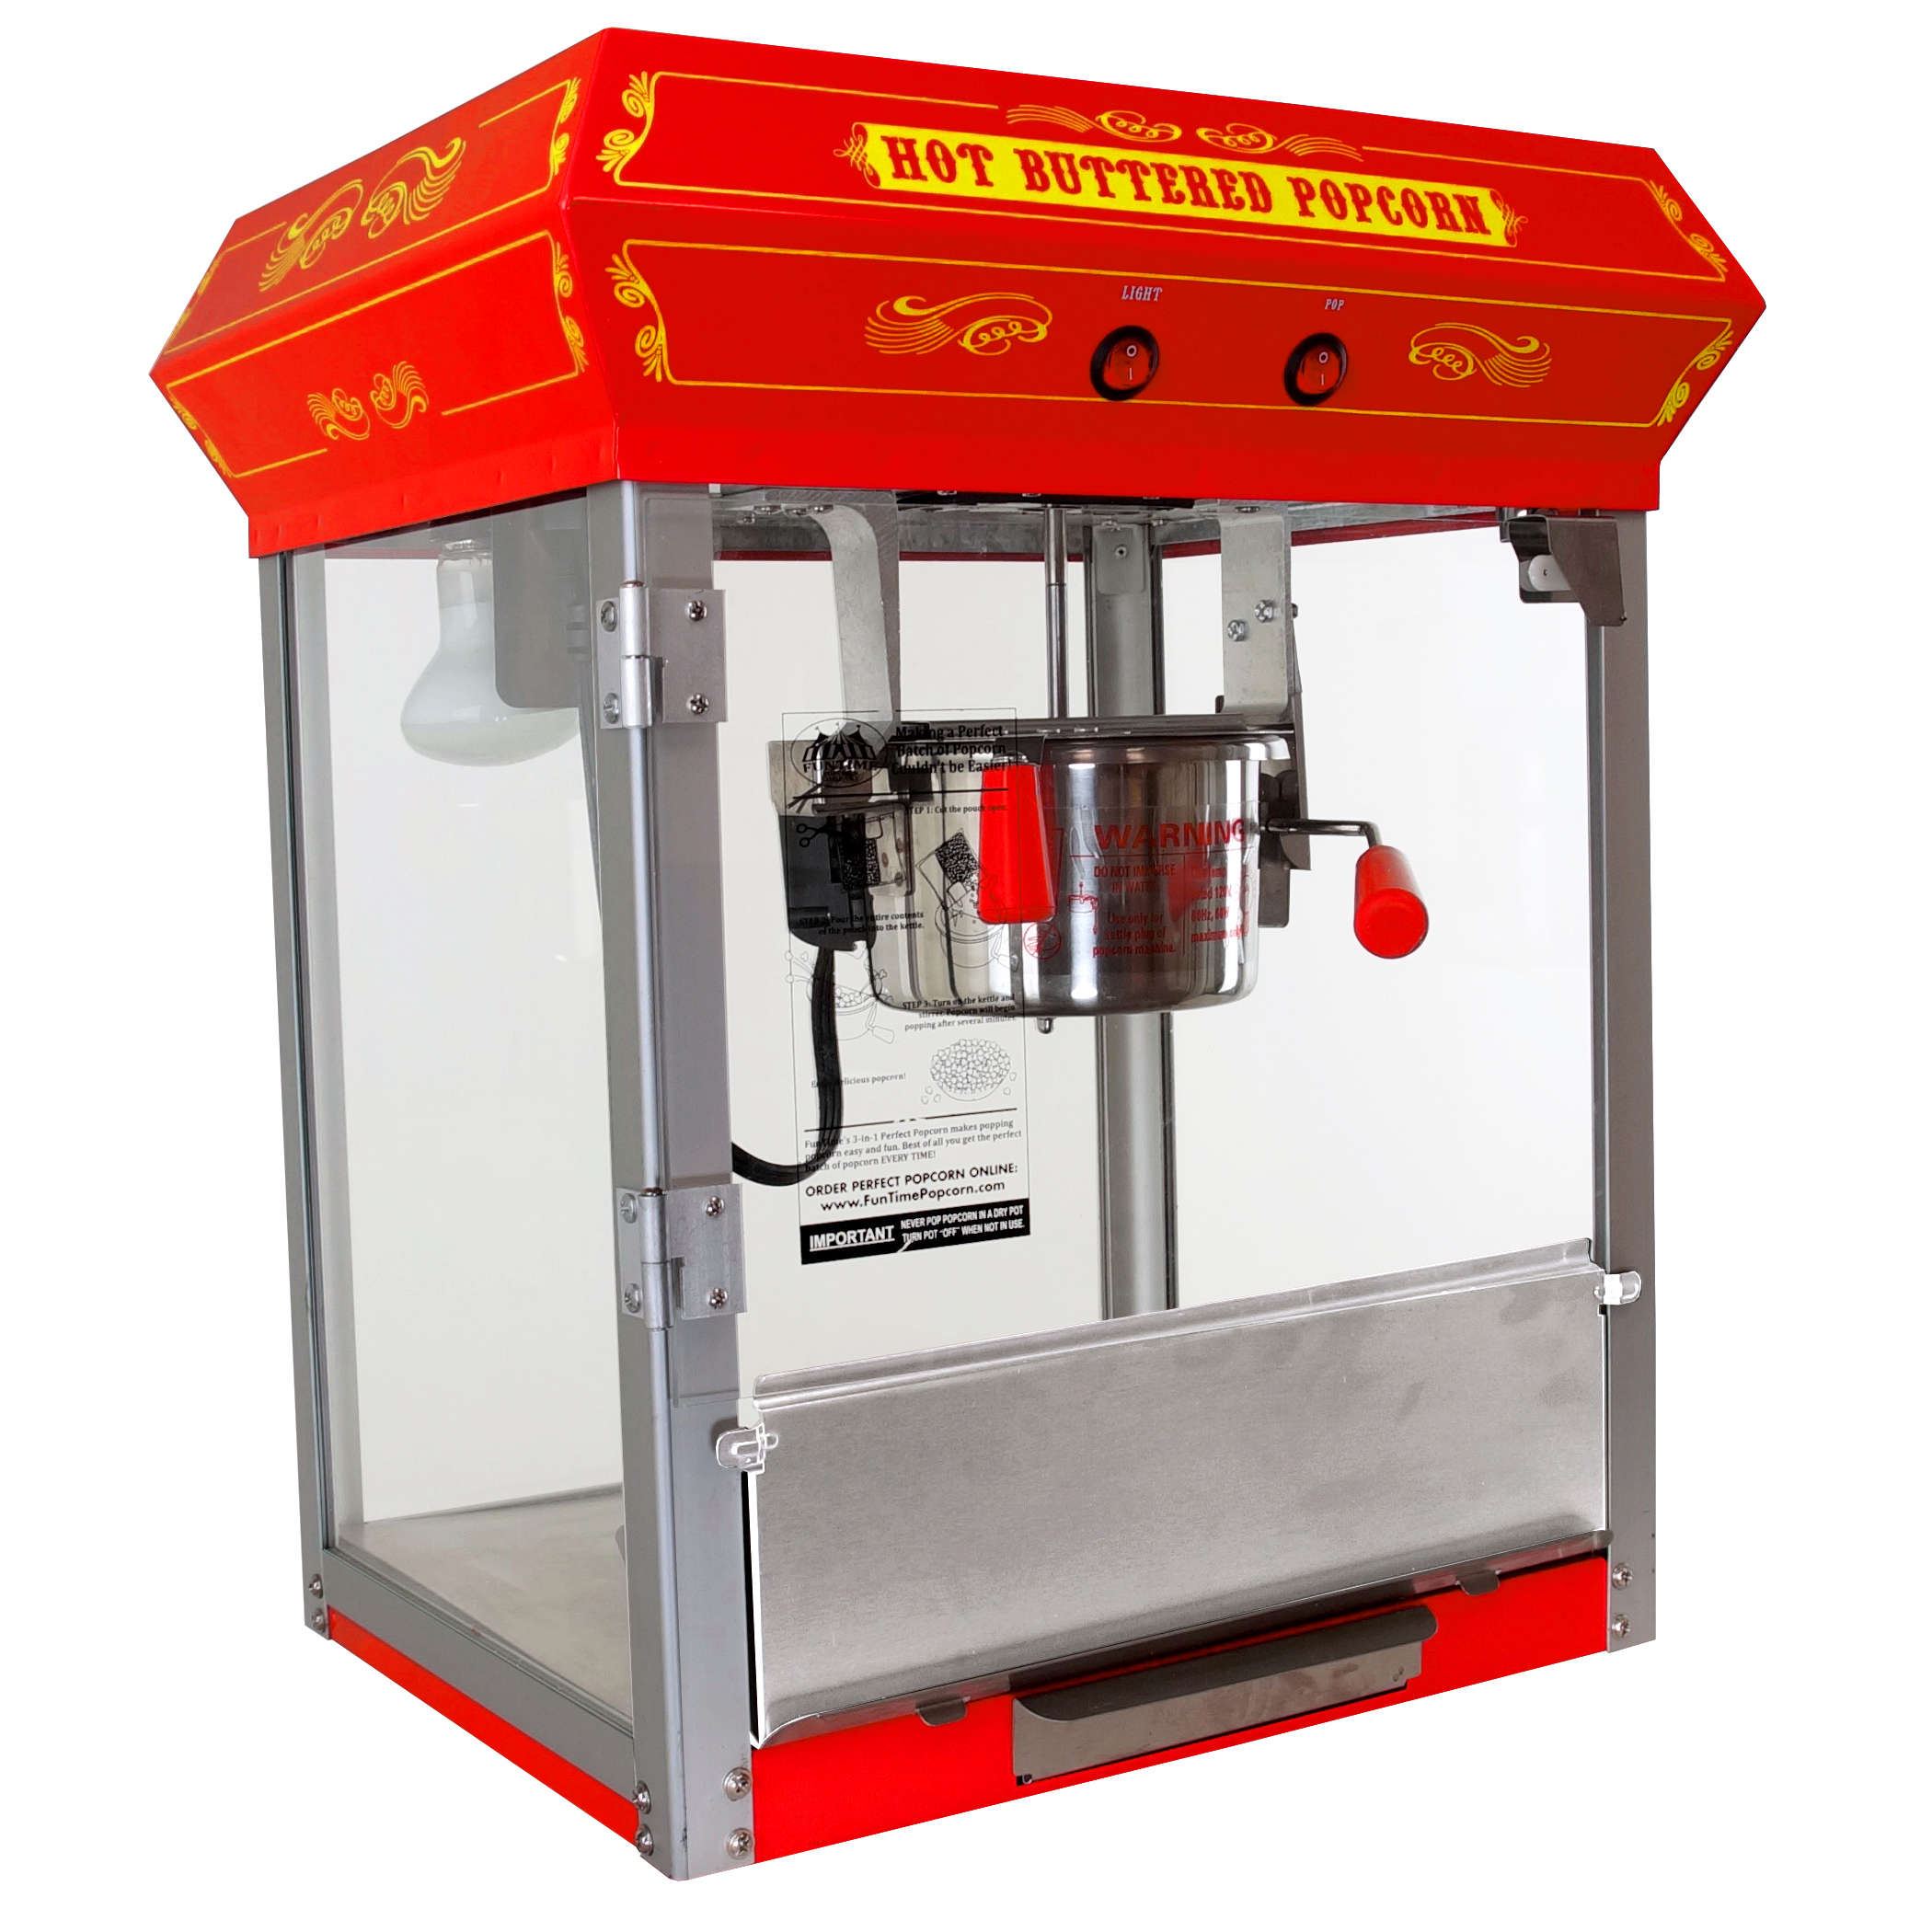 Genial FunTime 4oz Red Bar Table Top Popcorn Popper Maker Machine   FT421CR